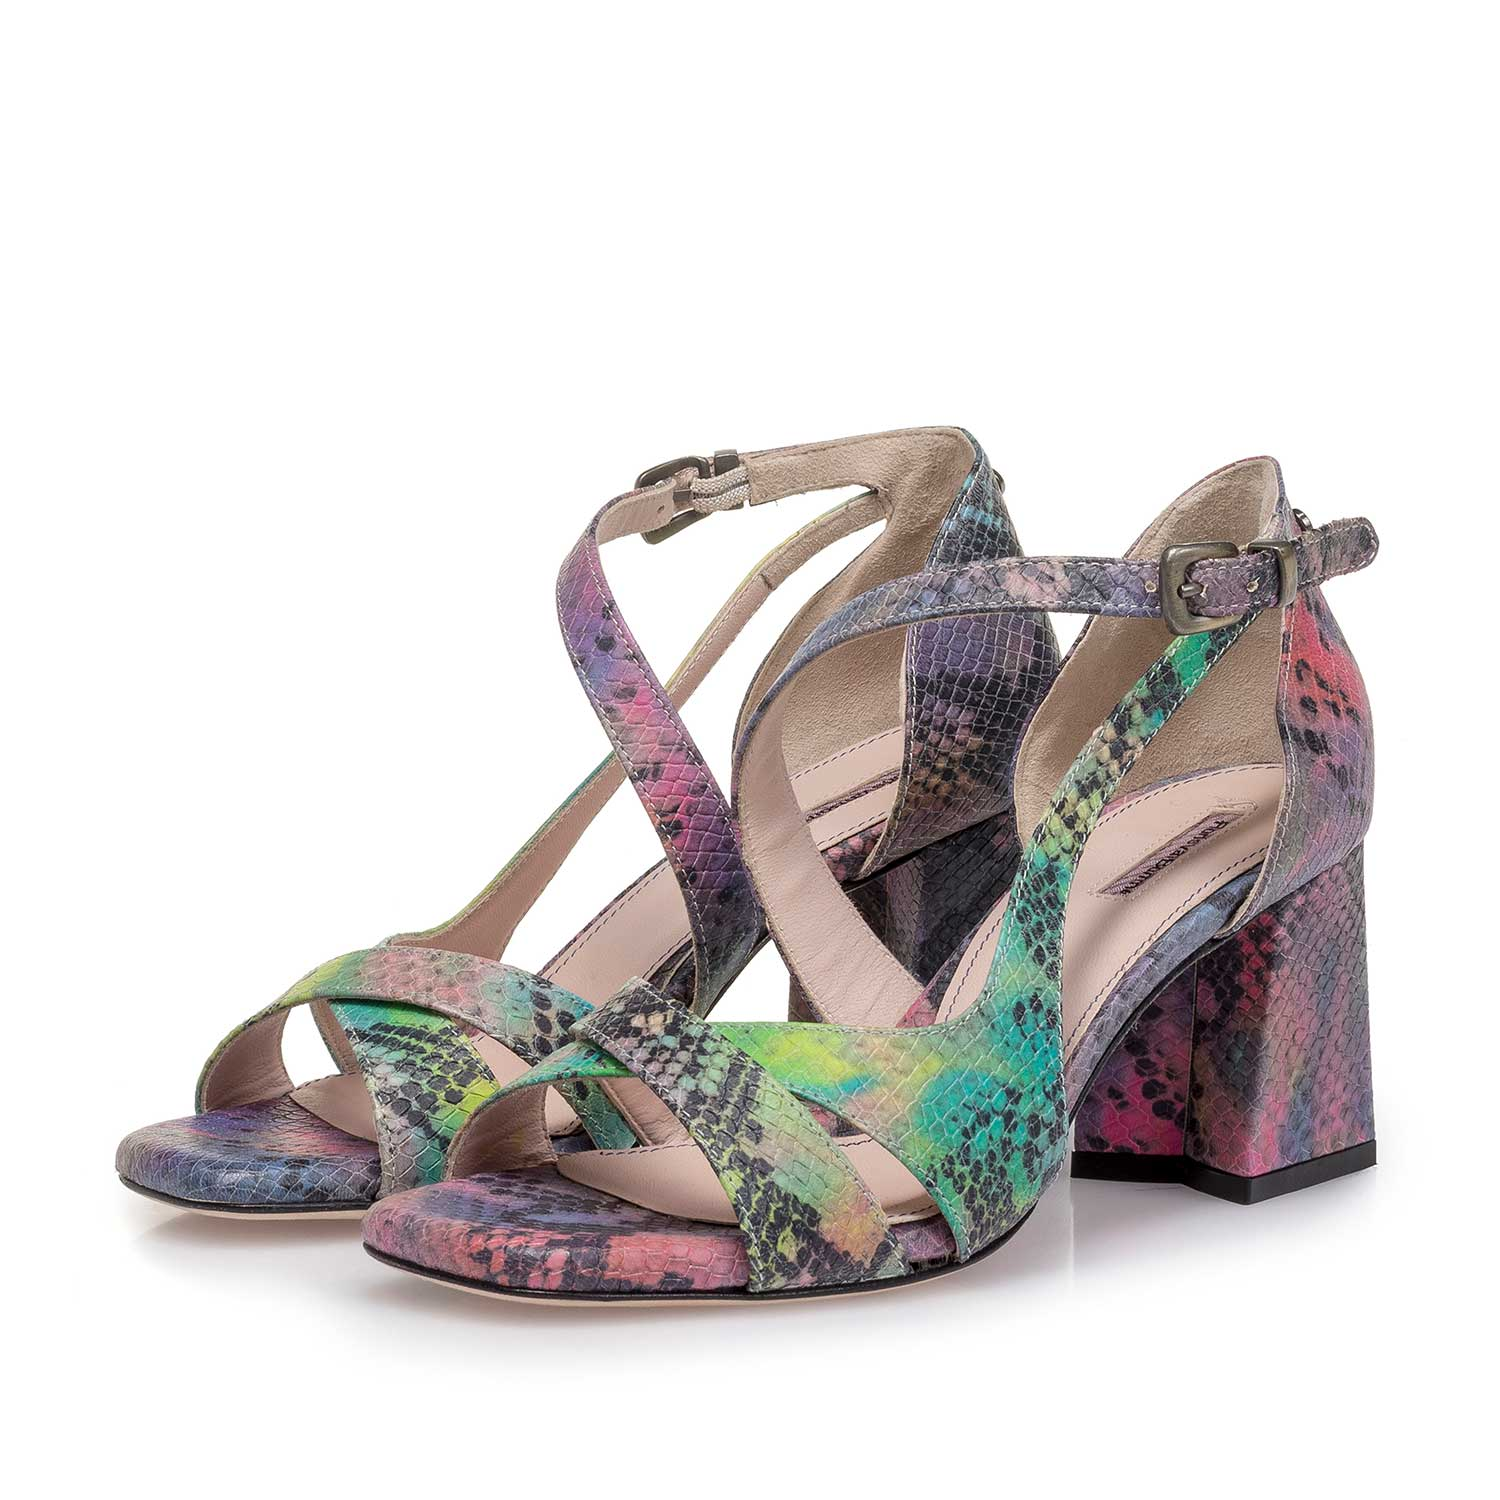 85919/03 - Purple snake print leather sandal